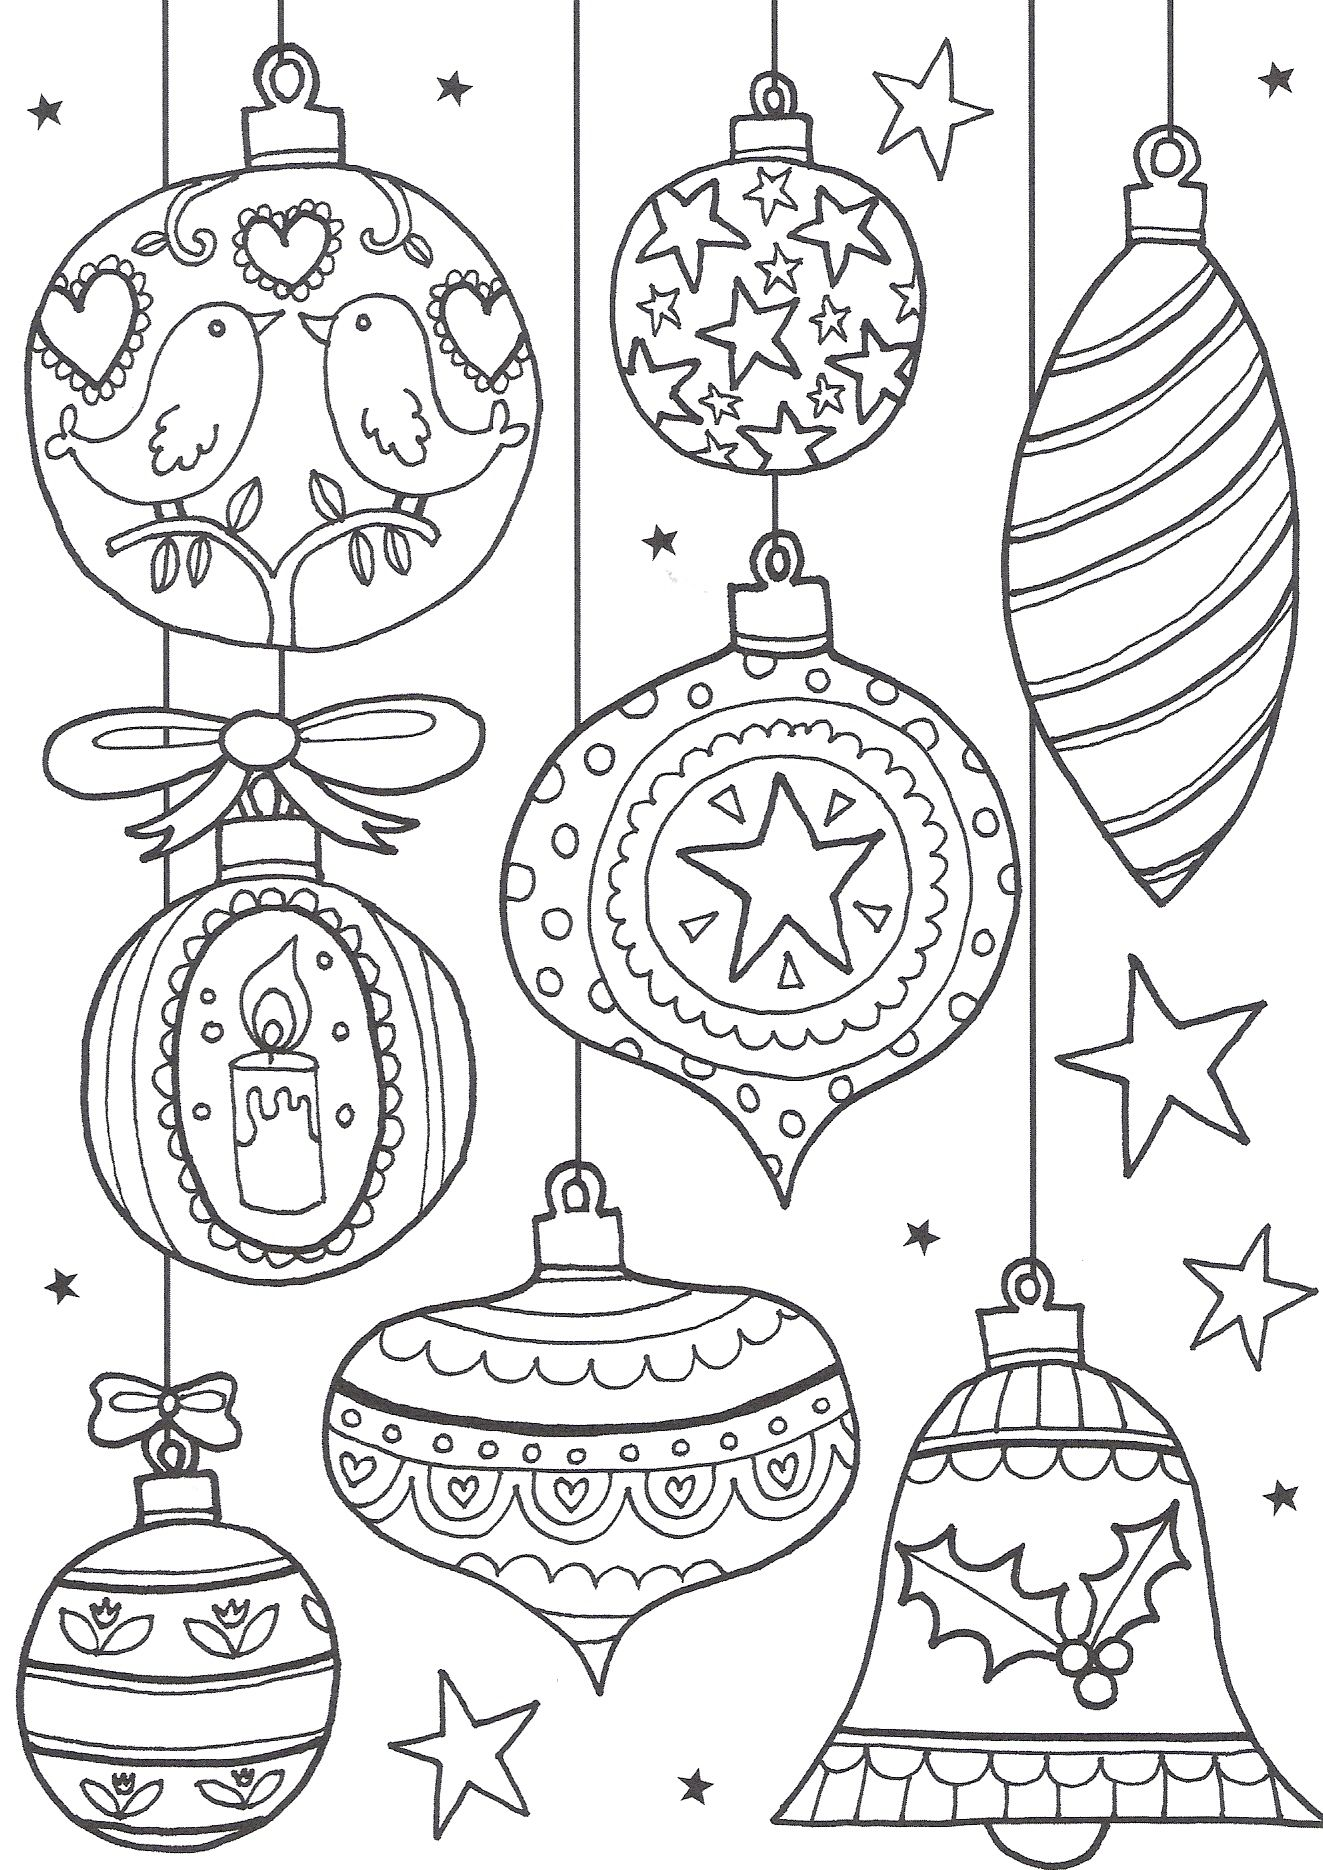 christmas coloring pages adult Free Christmas Colouring Pages for Adults – The Ultimate Roundup  christmas coloring pages adult